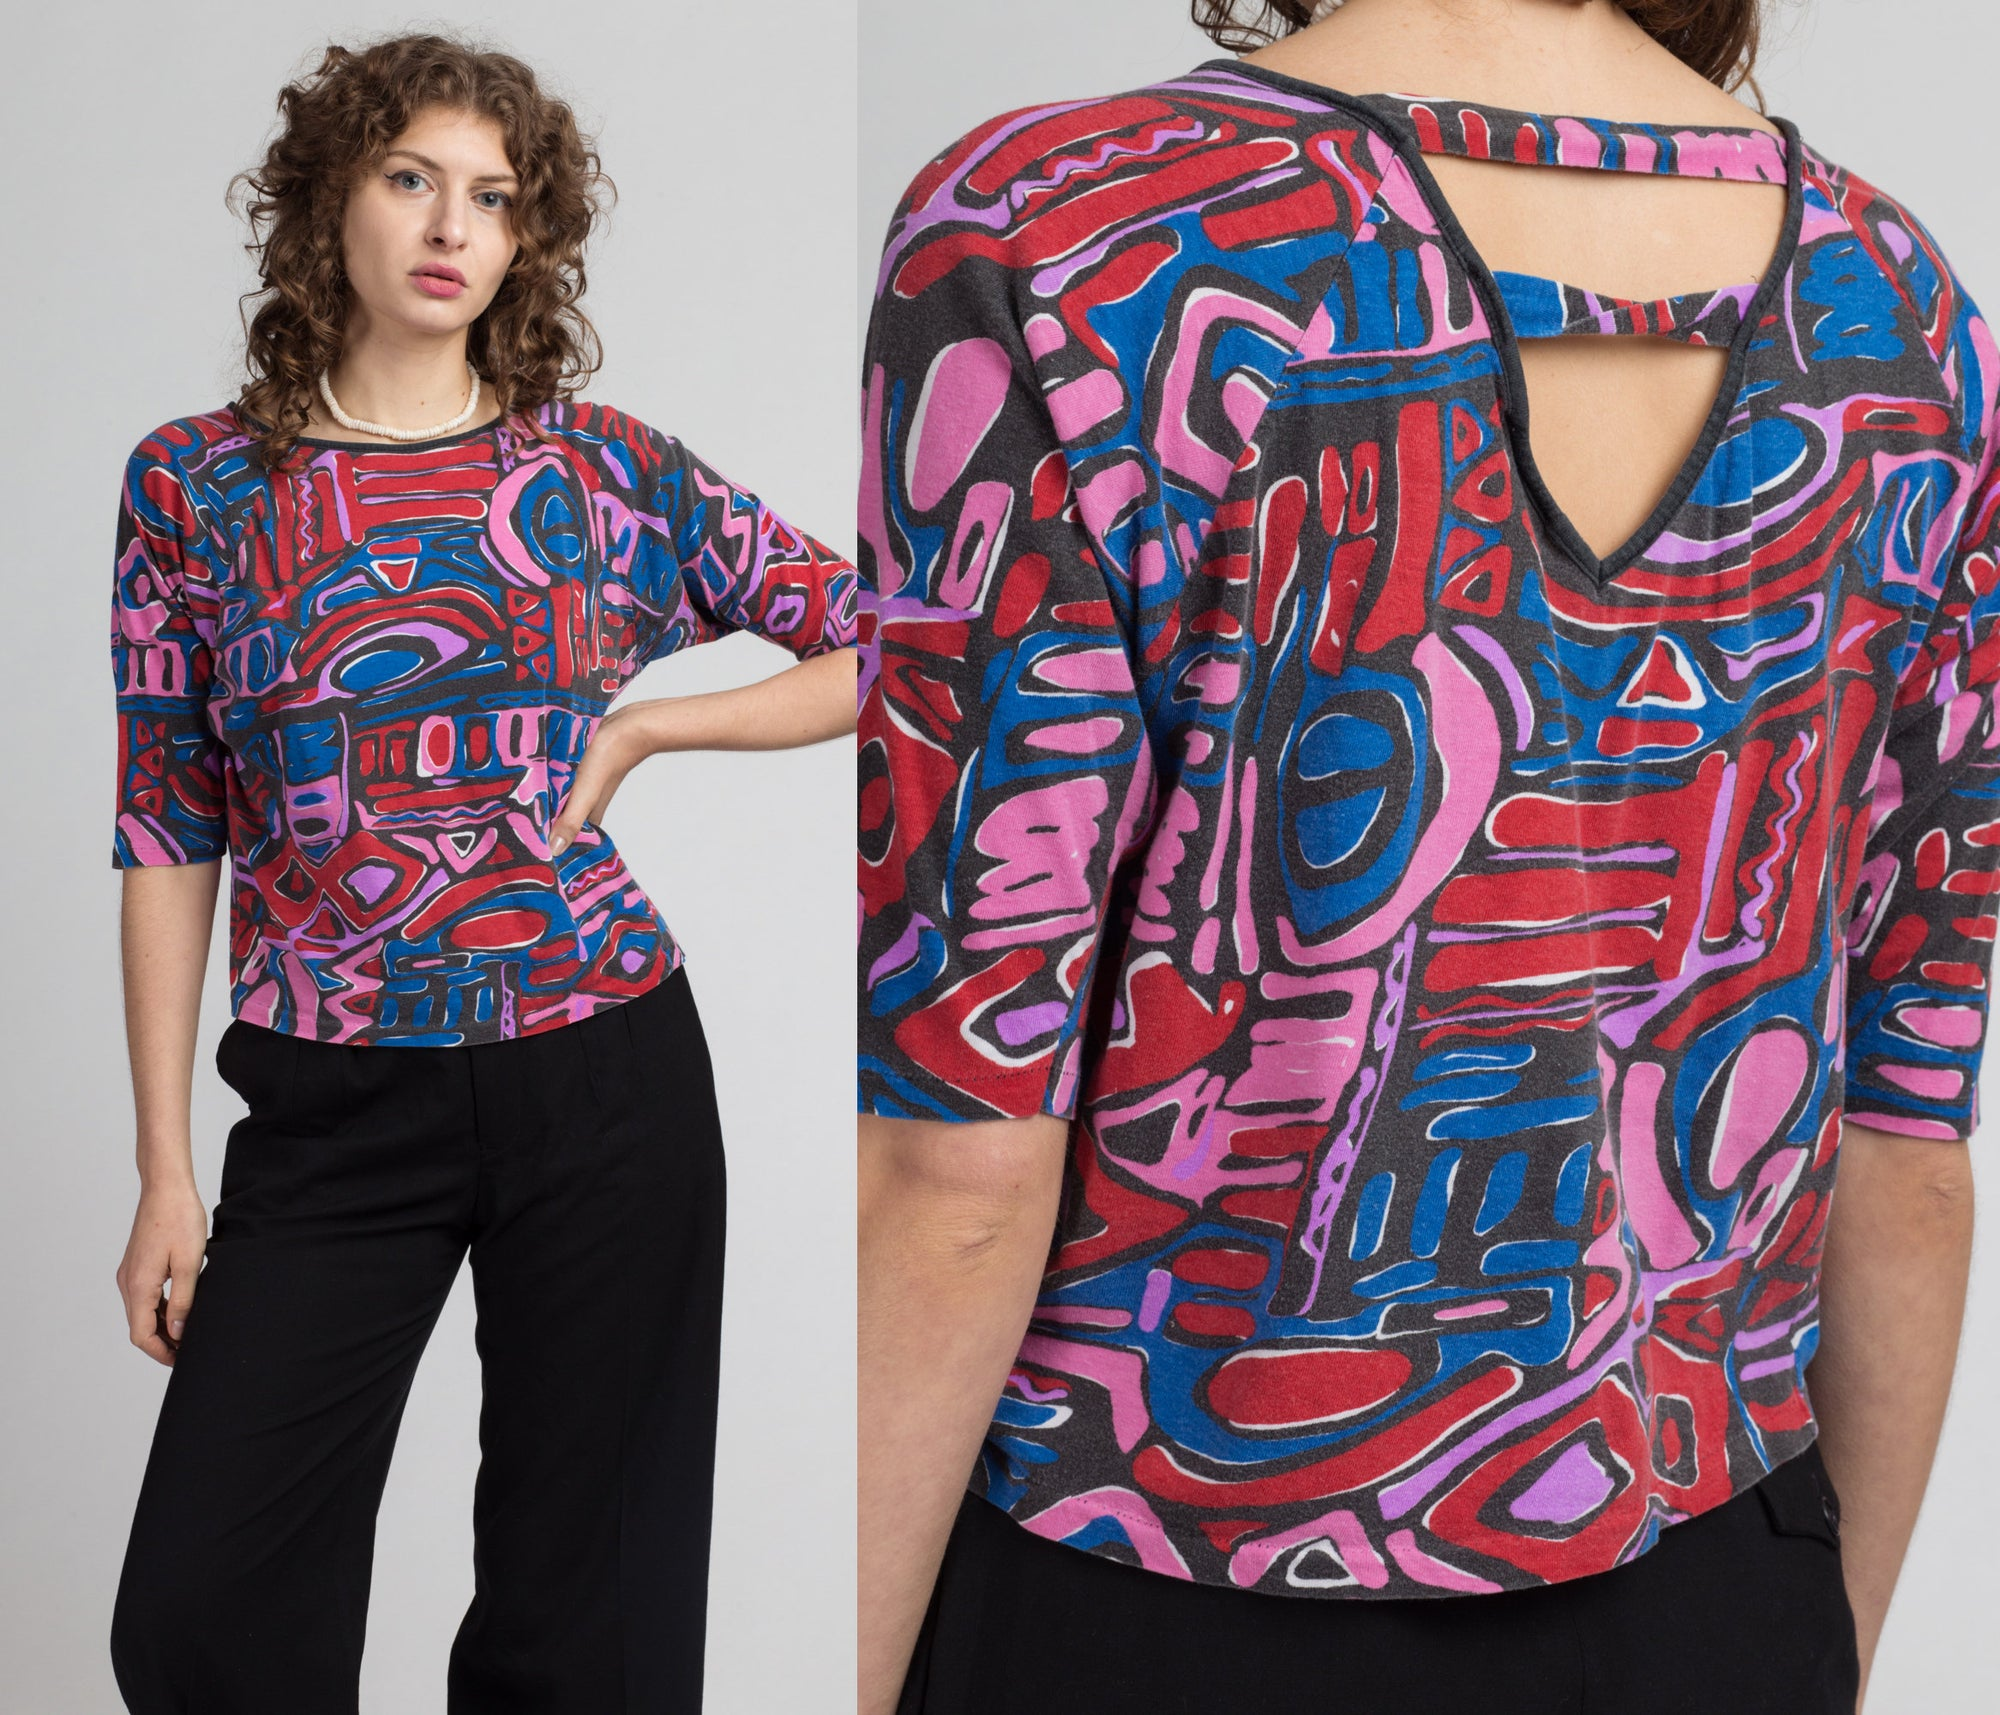 90s Keyhole Back Abstract Crop Top - Medium | Vintage Pink Red Blue Print Batwing Blouse